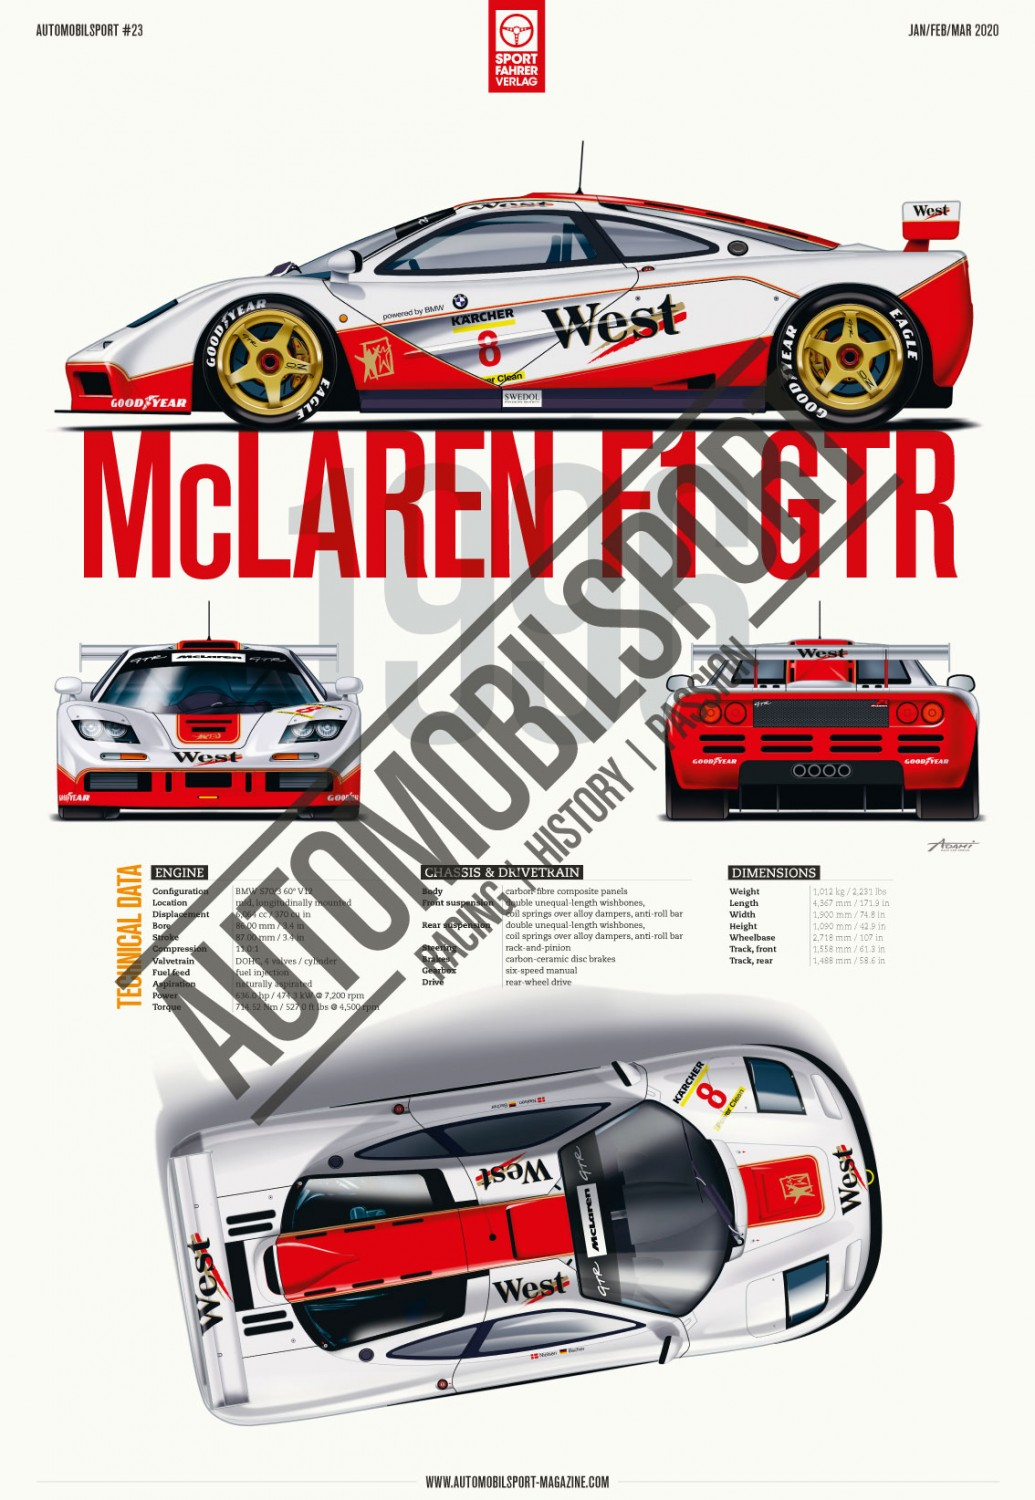 BPR Global GT Series 94-96 (Vol 23 Automobilsport)